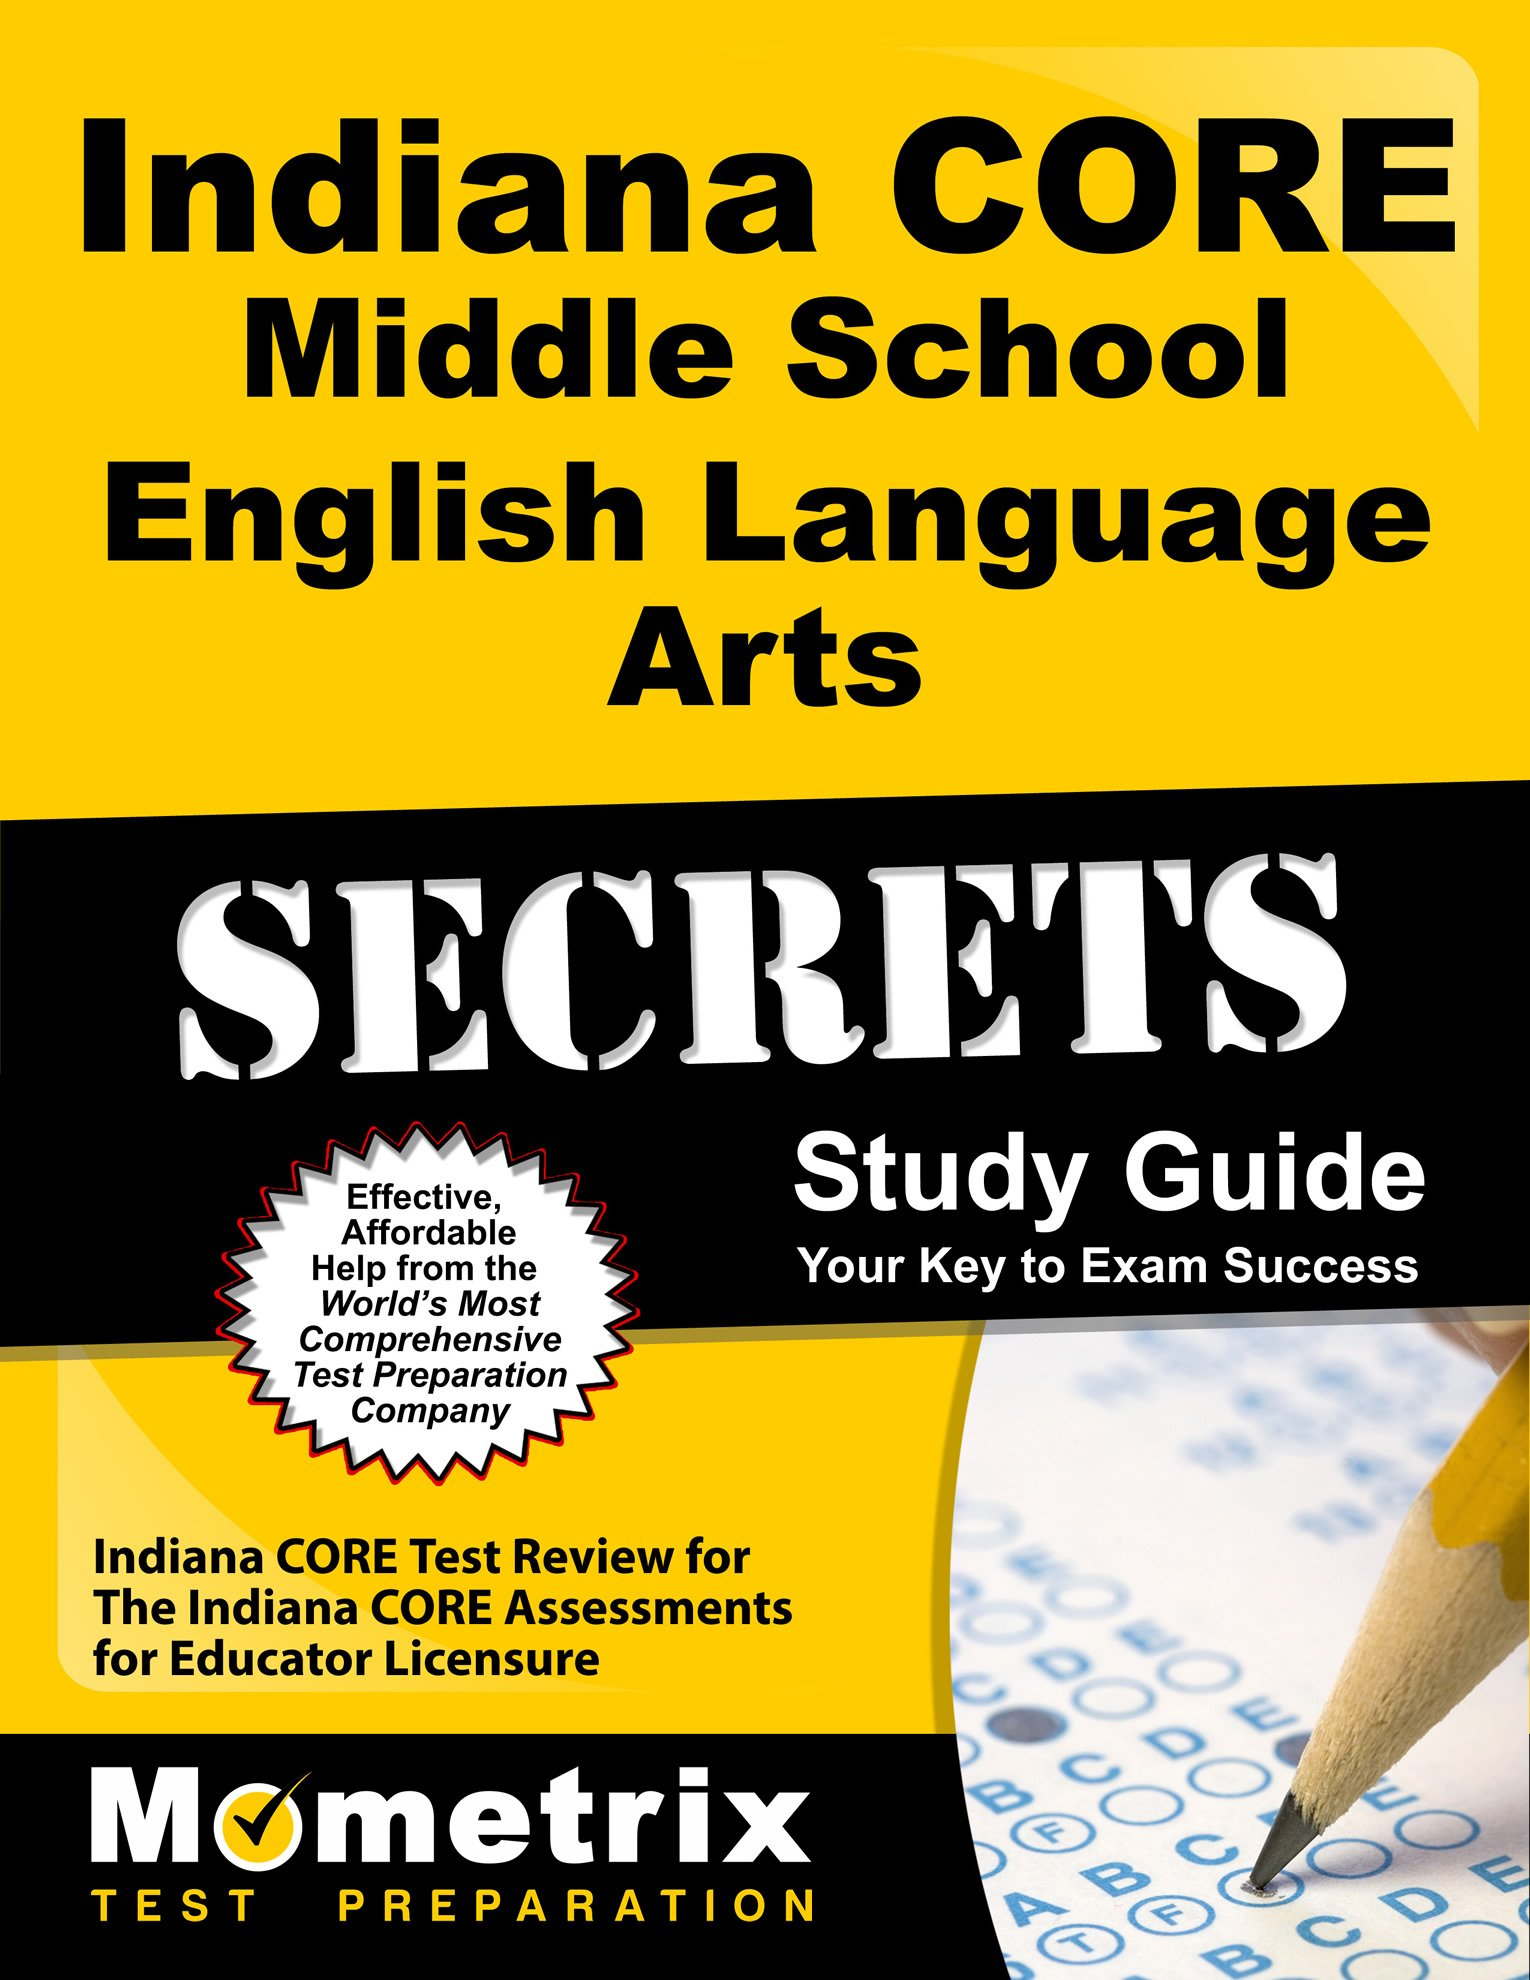 Indiana CORE Middle School English Language Arts Secrets Study Guide: Indiana CORE Test Review for the Indiana CORE Assessments for Educator Licensure by Mometrix Test Preparation